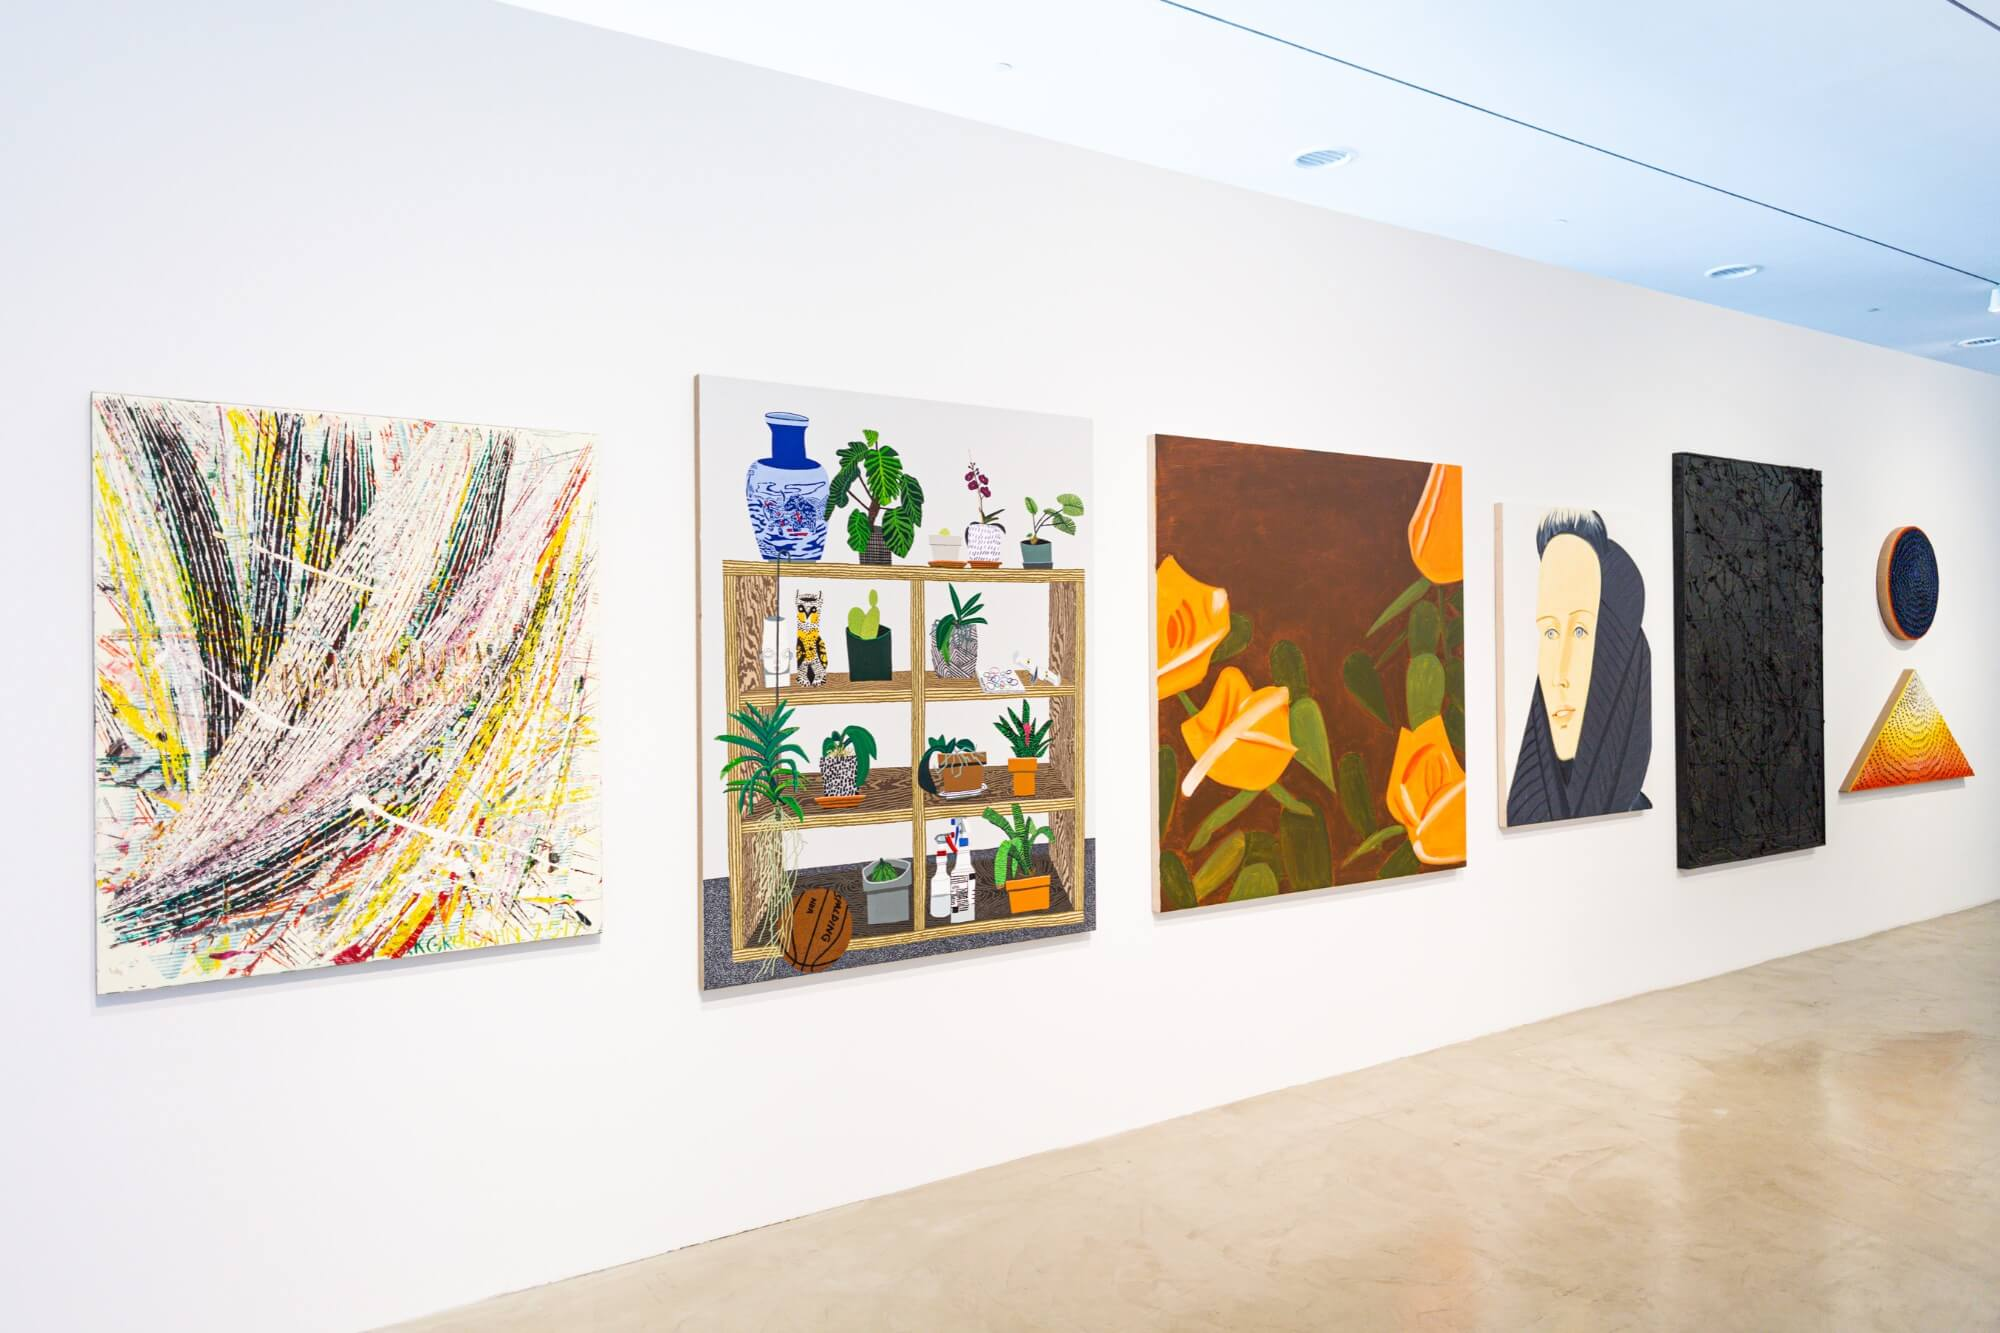 Installation view of A Possible Horizon at the de la Cruz Collection, 2020-21 Pictured left to right: work by Mark Grotjahn, Jonas Wood, Alex Katz, Rashid Johnson and Jennifer Guidi